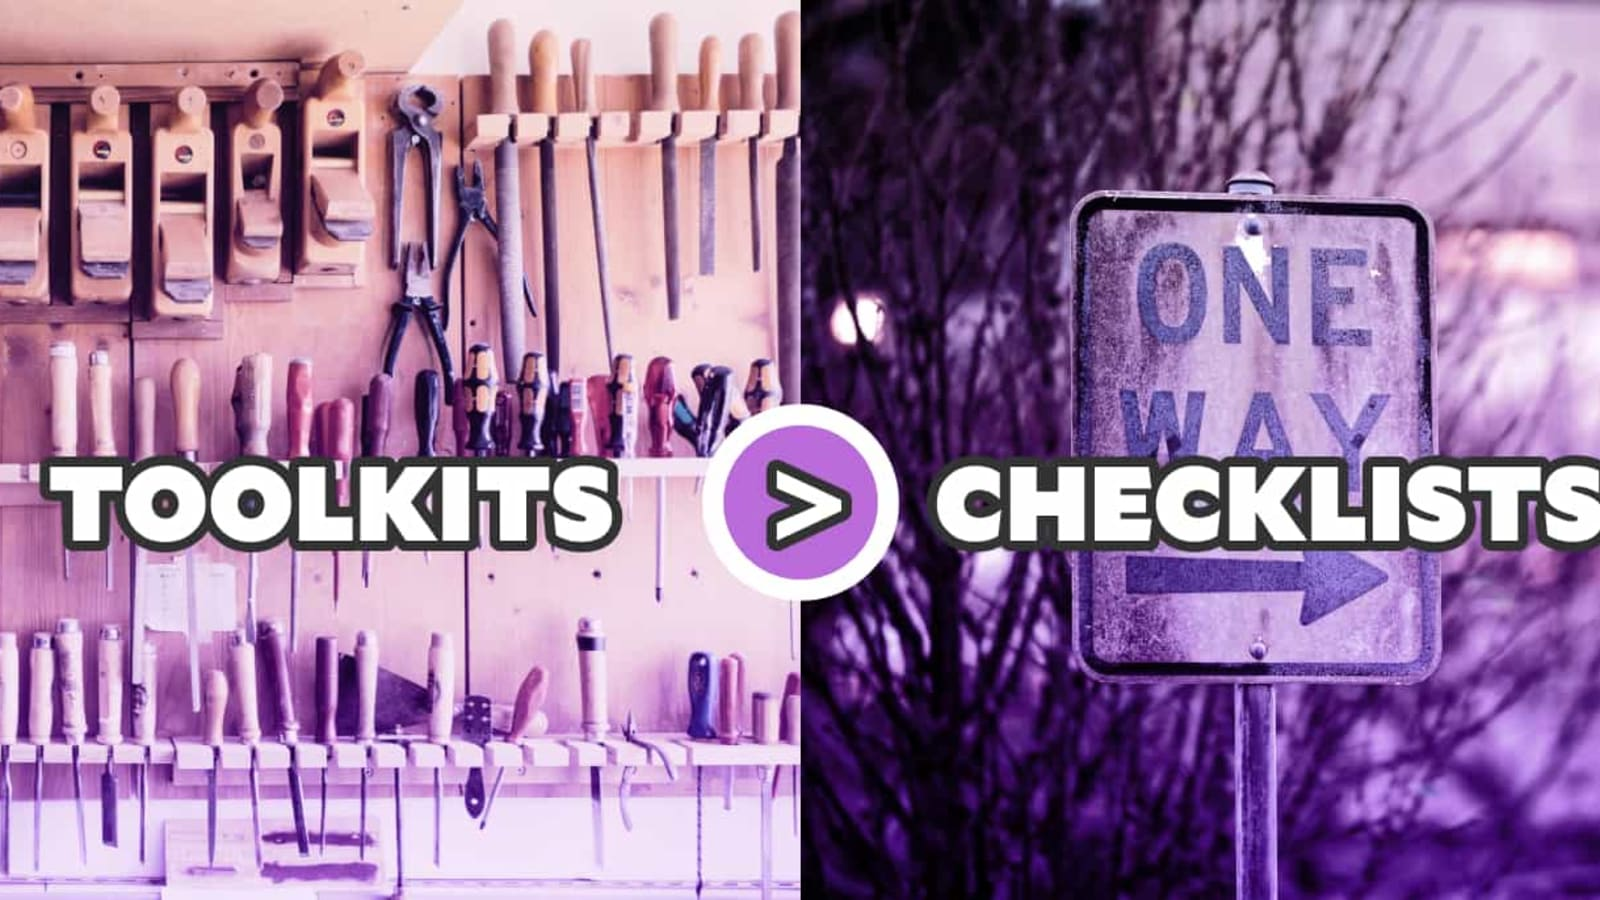 Toolkits Over Checklists